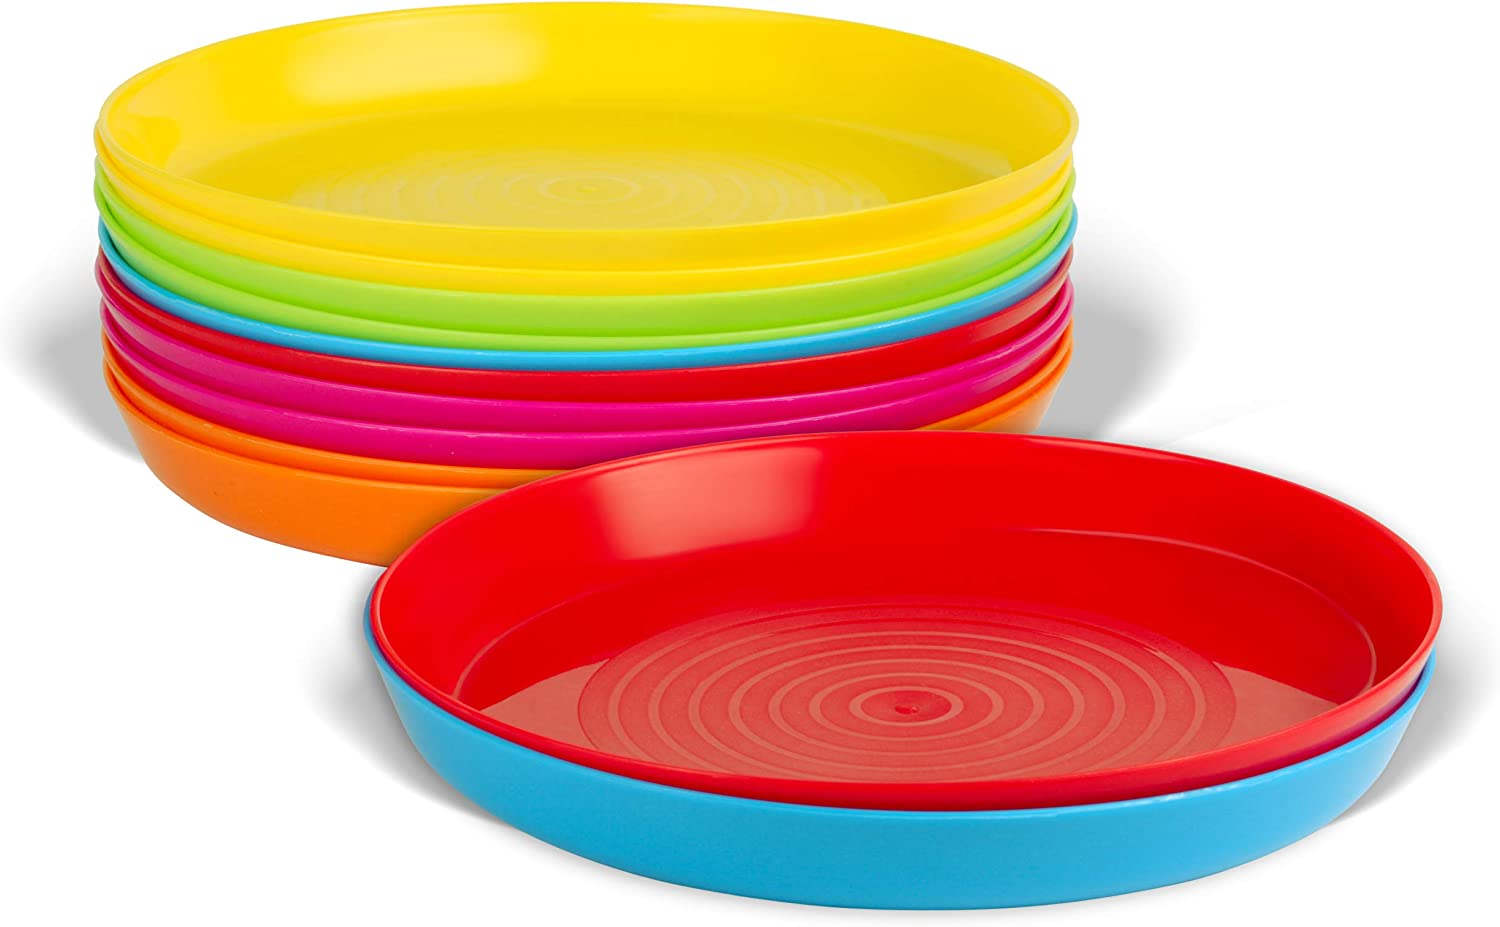 Plaskidy Kids Plastic Plates Set of 12 - Reusable Plastic Childrens Plates Microwave Dishwasher Safe - BPA Free Plastic Dinner Plates For Kids 6 Assorted Colors 7 Inch Kid Plates (2 of Each Color)